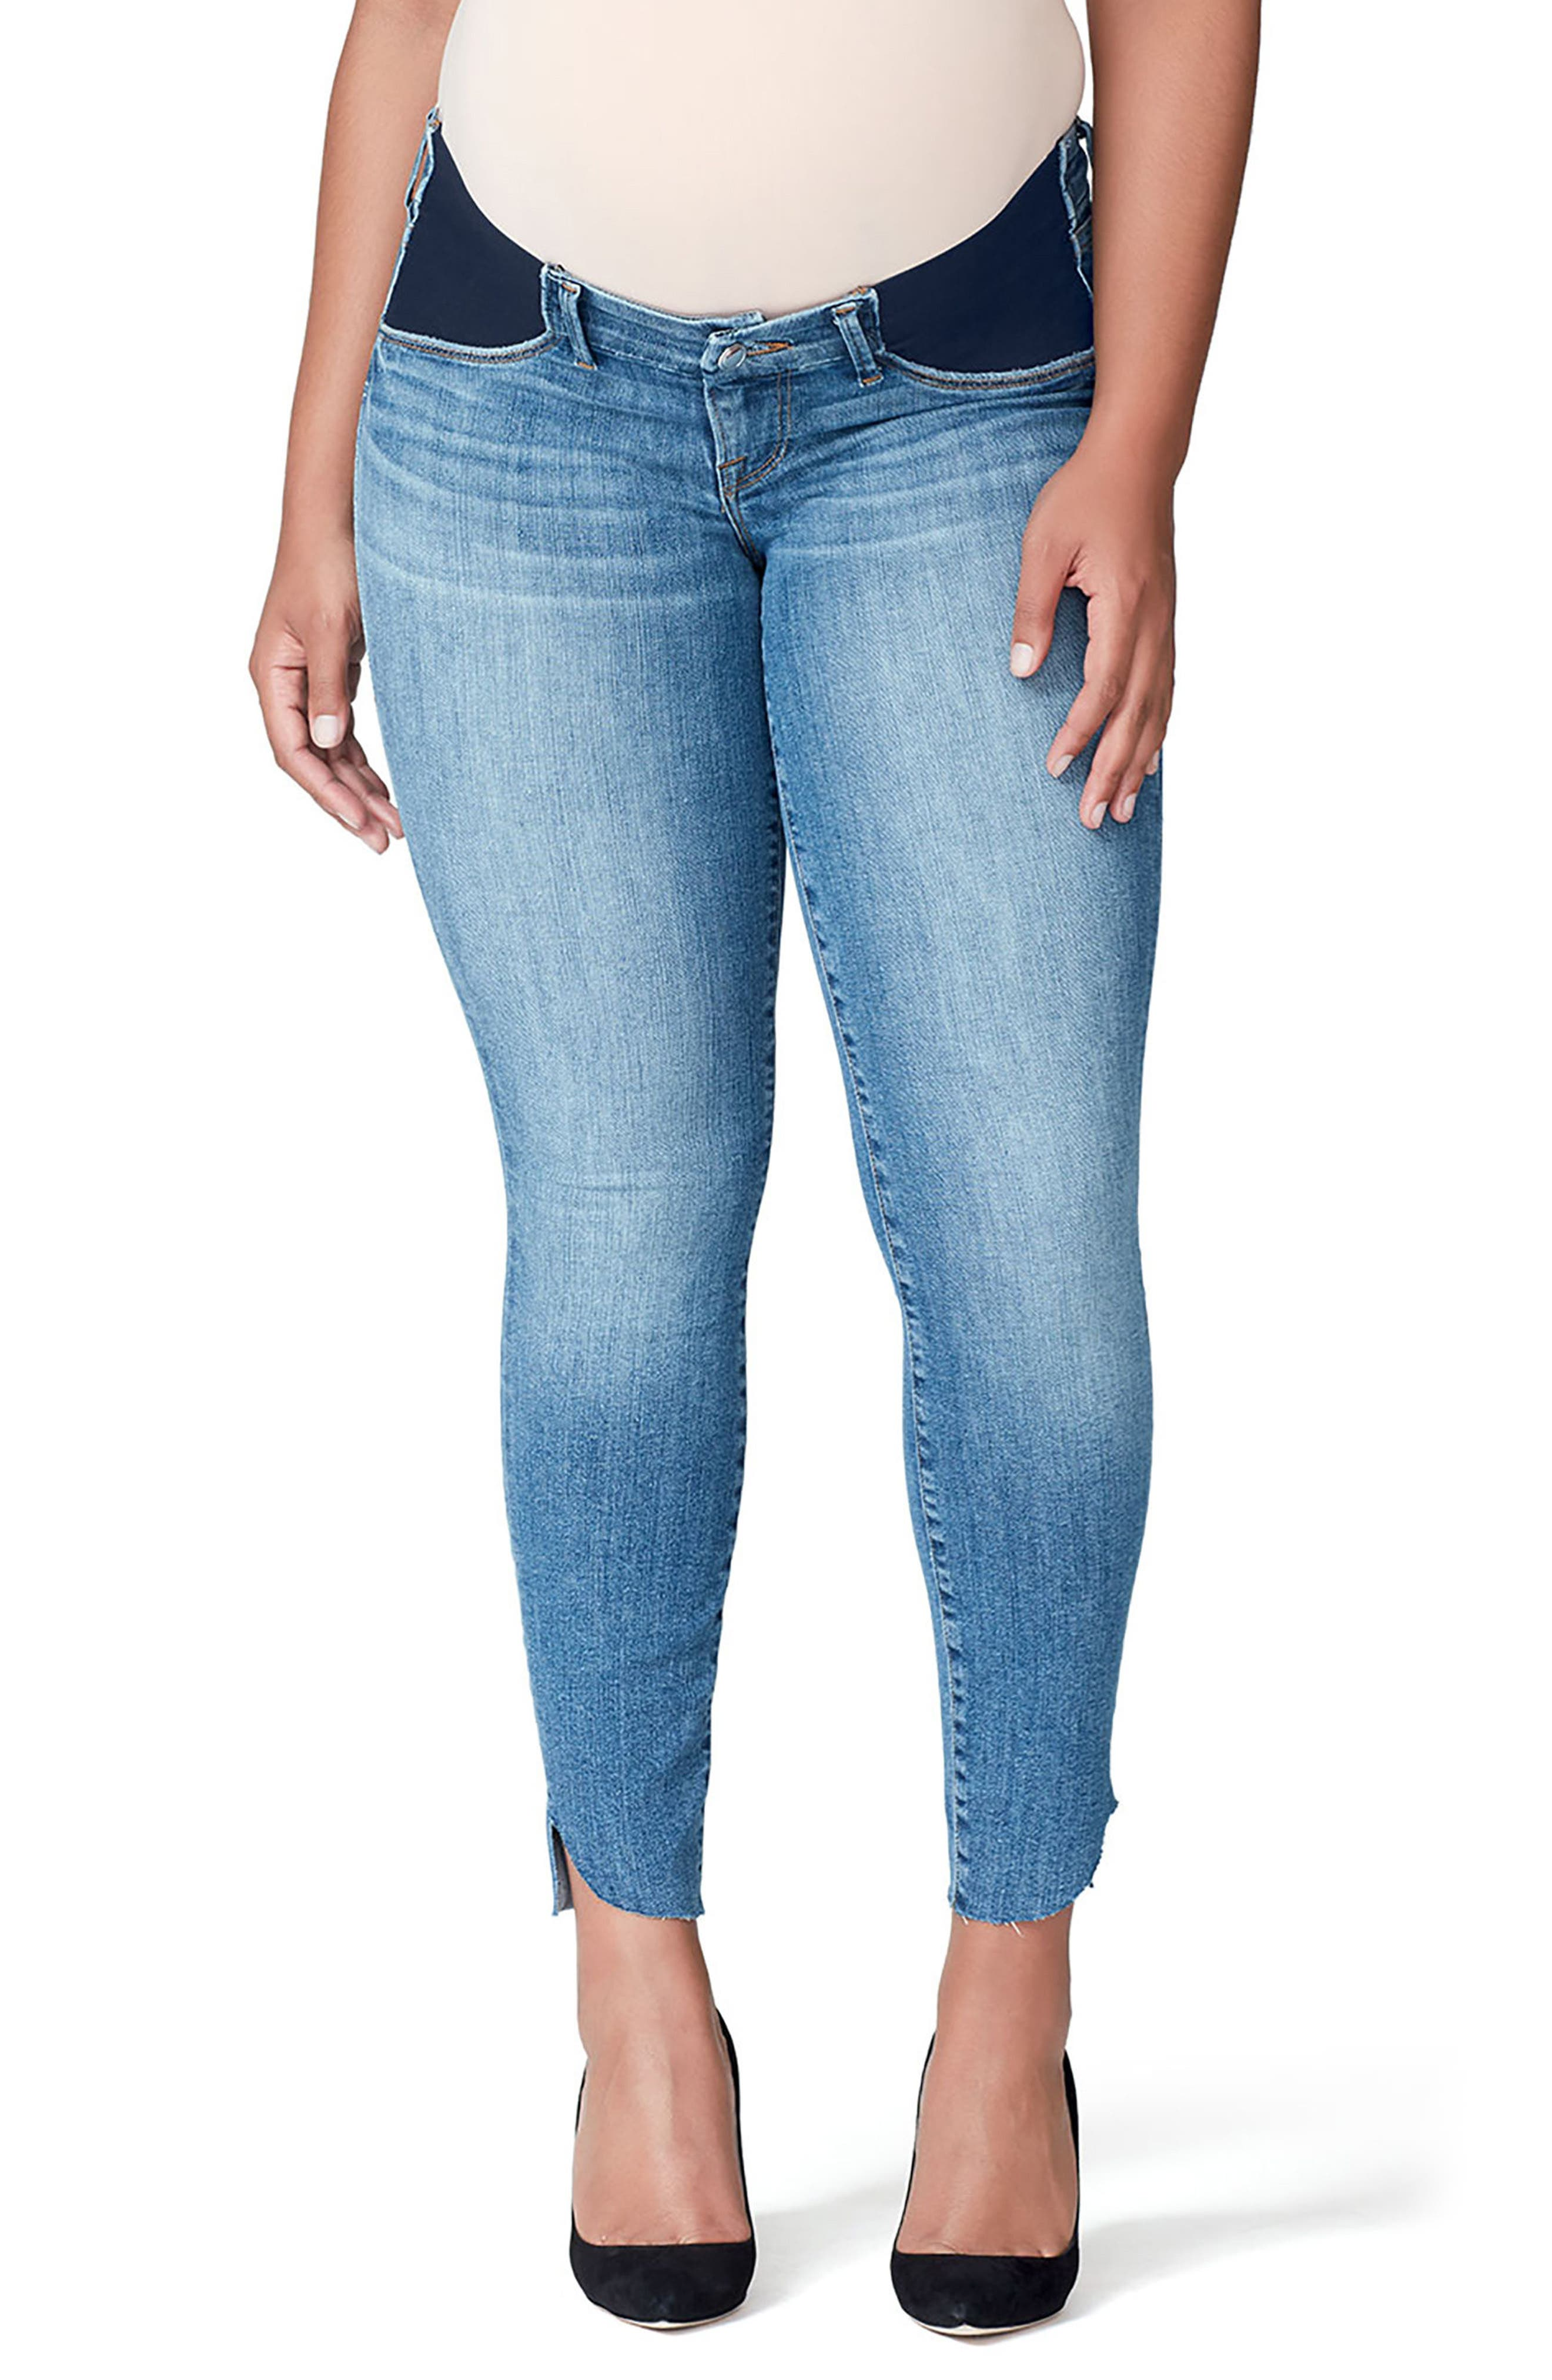 Women's Good American Good Mama The Honeymoon Low Rise Cascade Hem Maternity Skinny Jeans